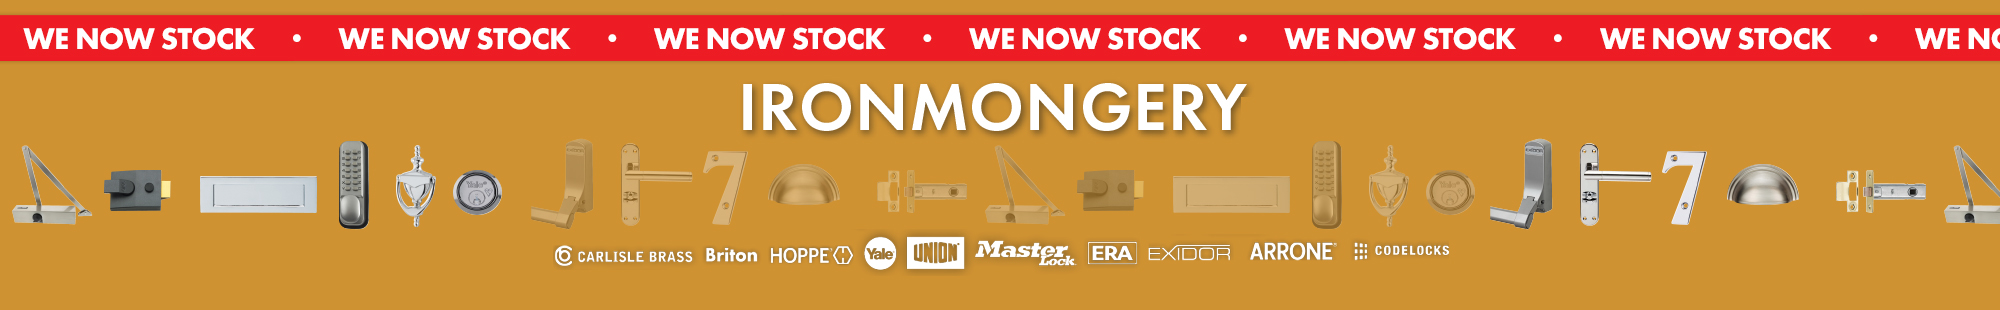 We Now Stock Ironmongery